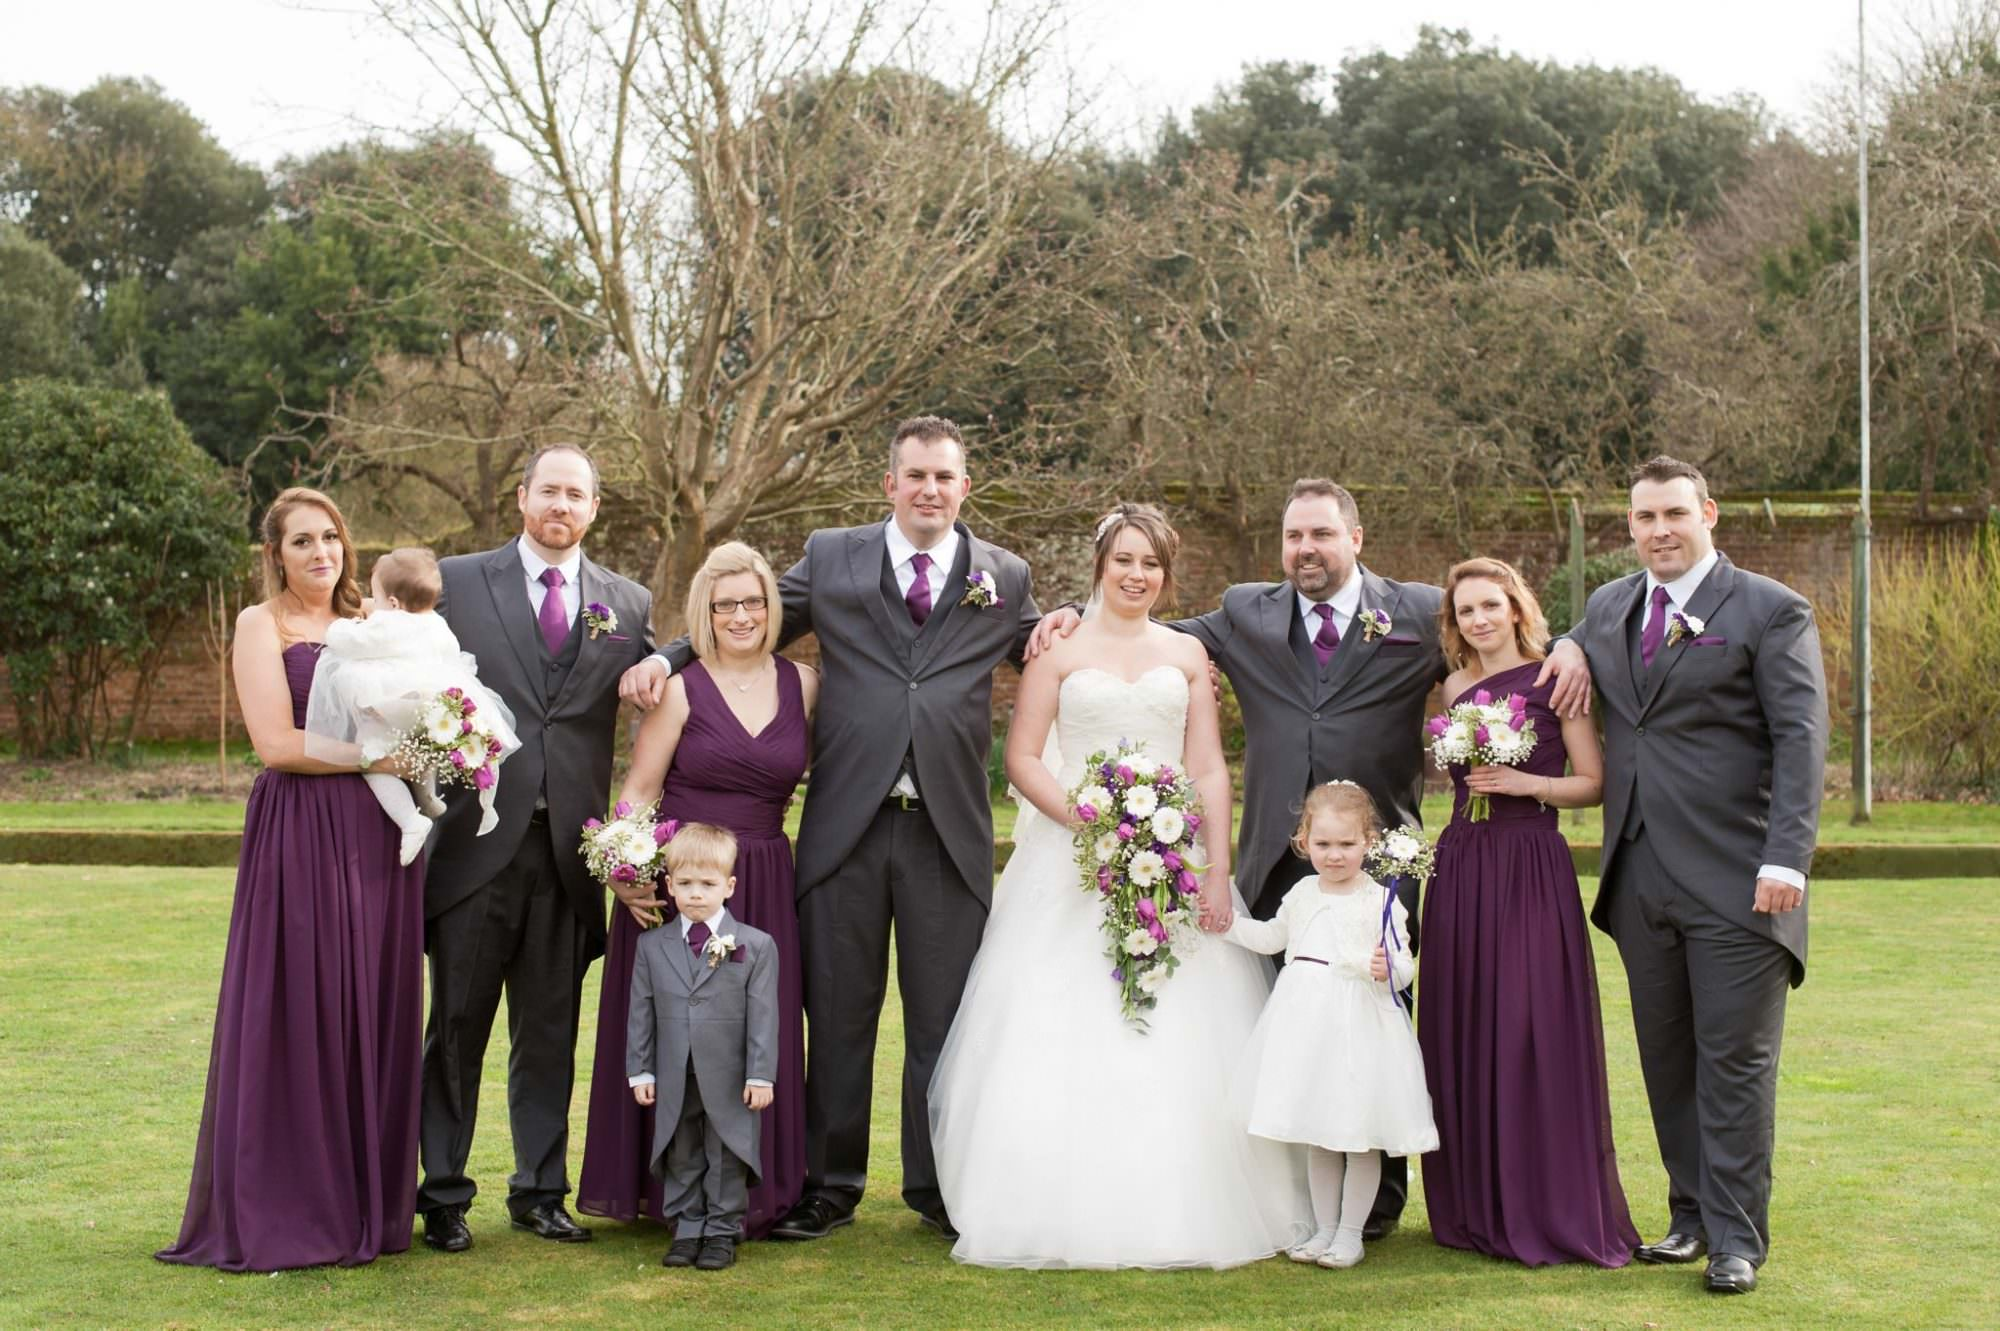 Bridal party at Kings Arms Hotel Wedding